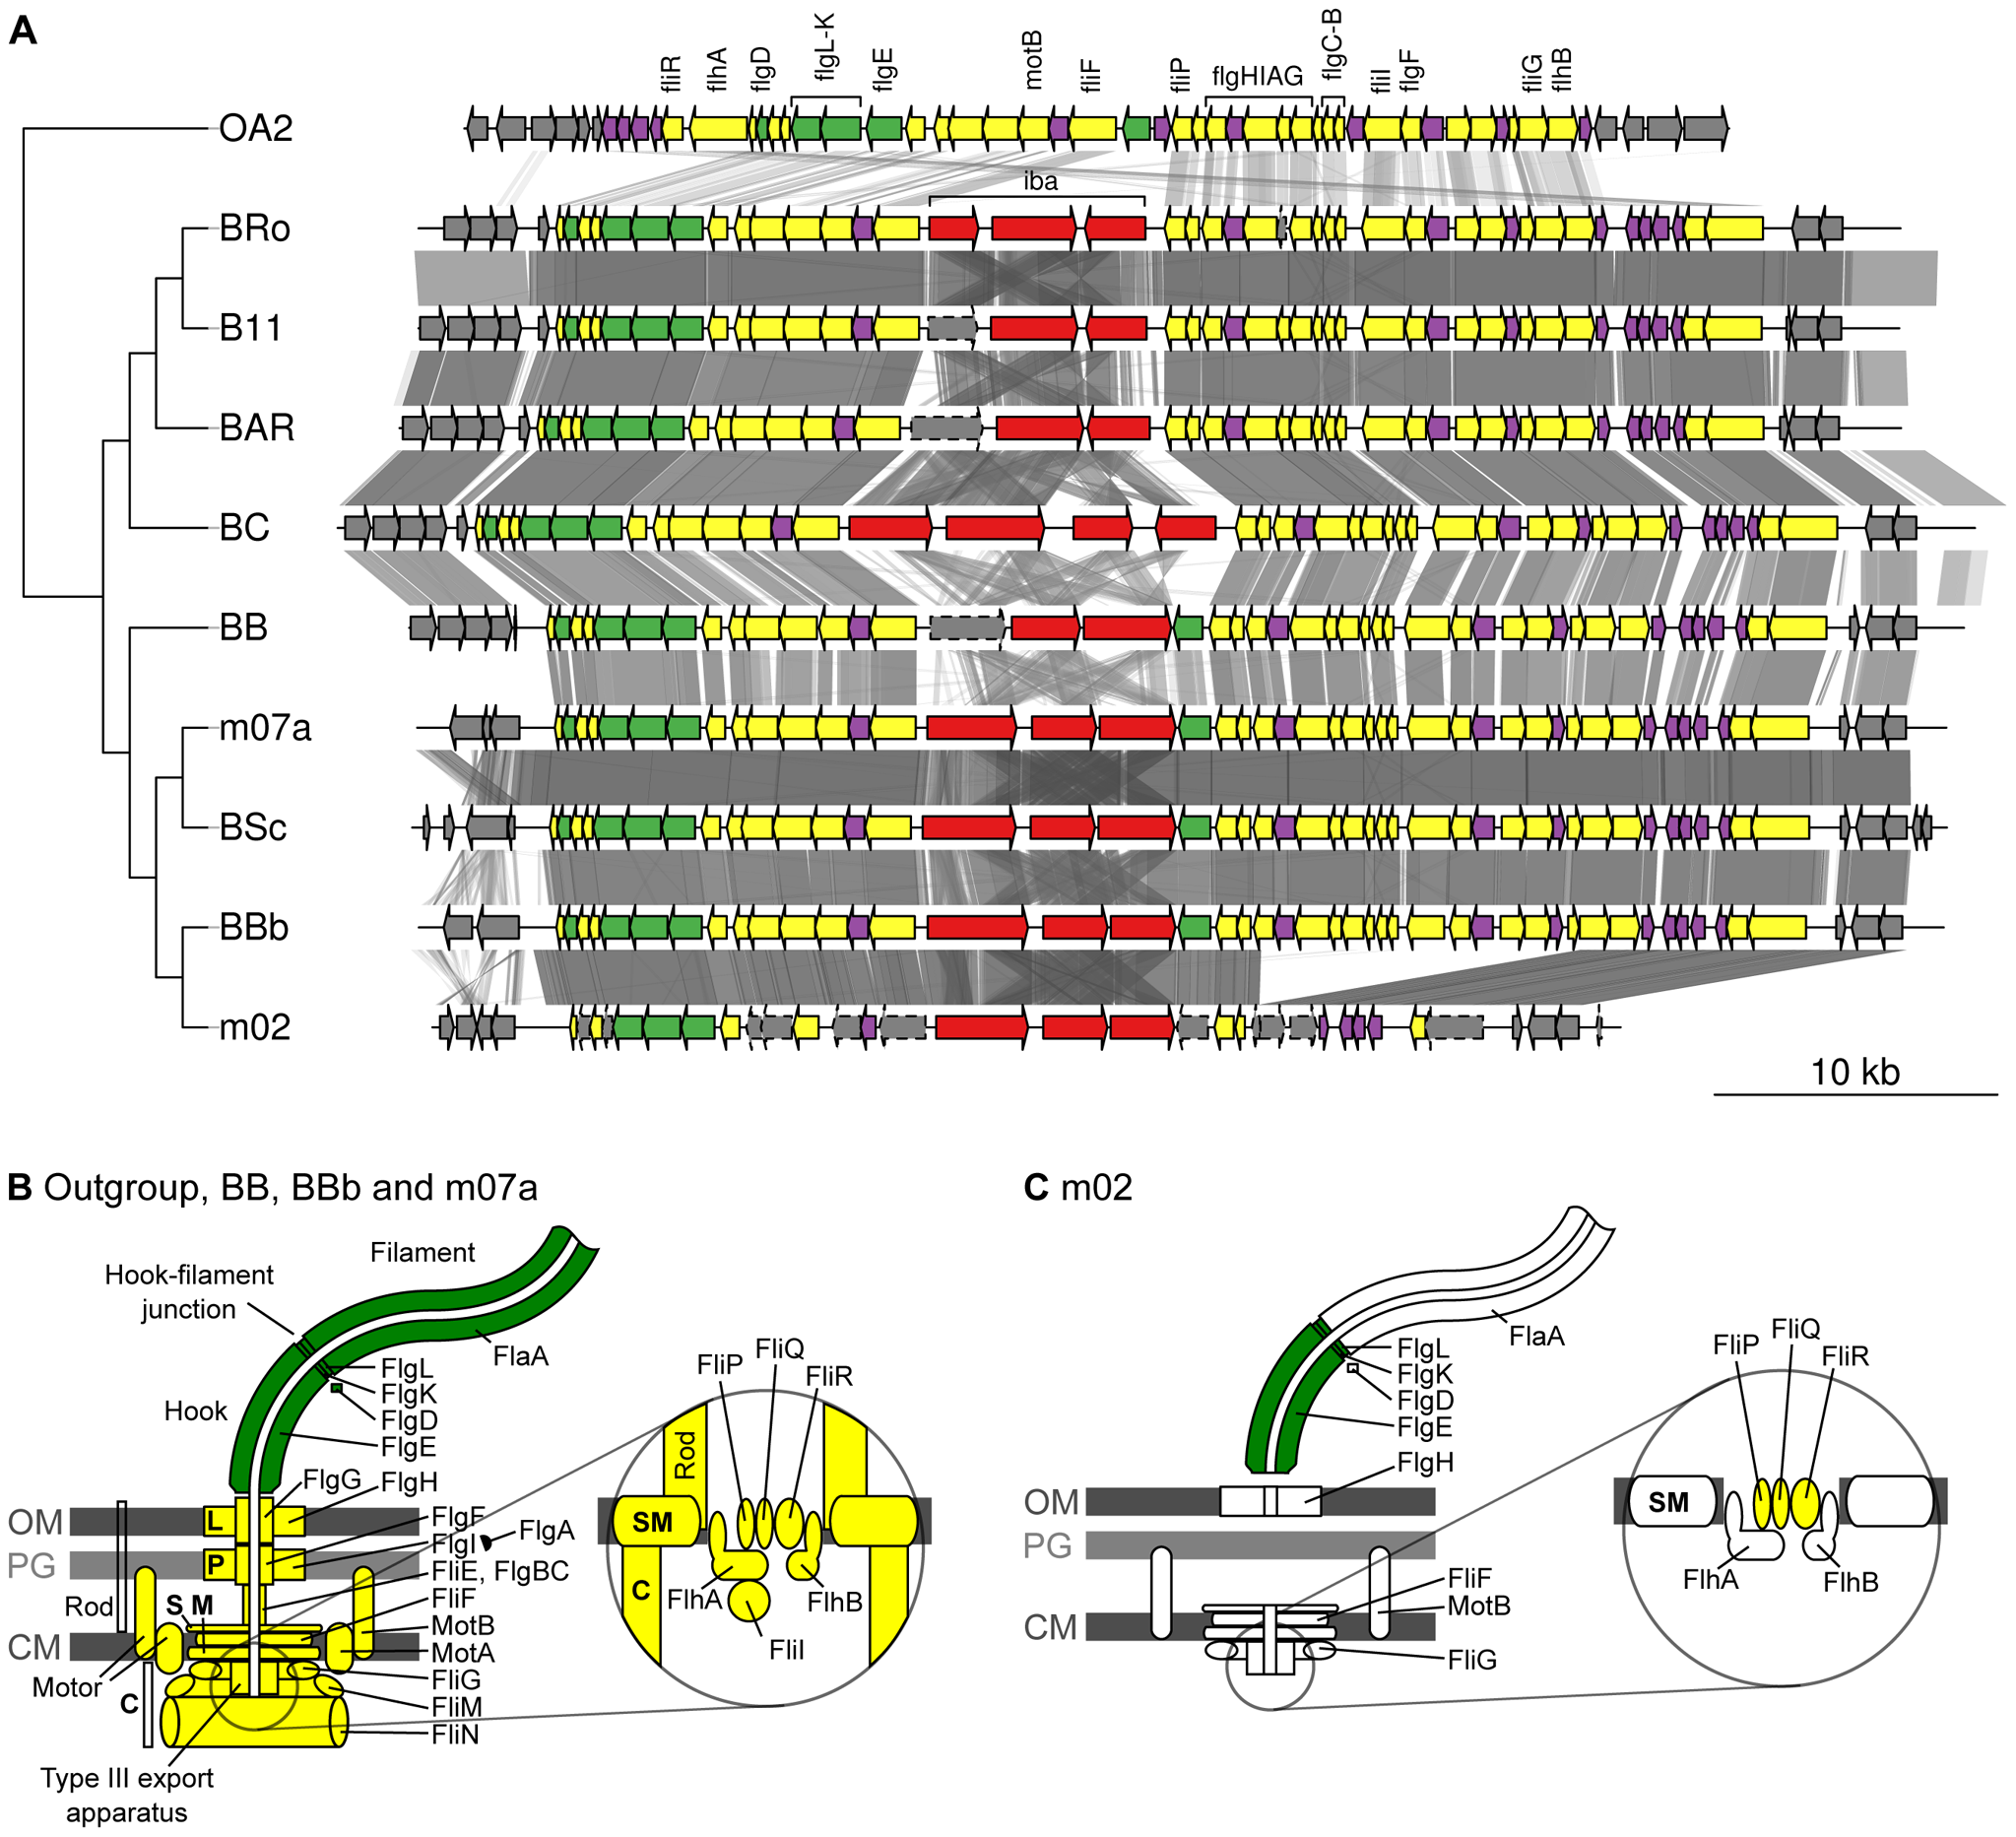 Gene order structures of the segment encoding the flagellum.